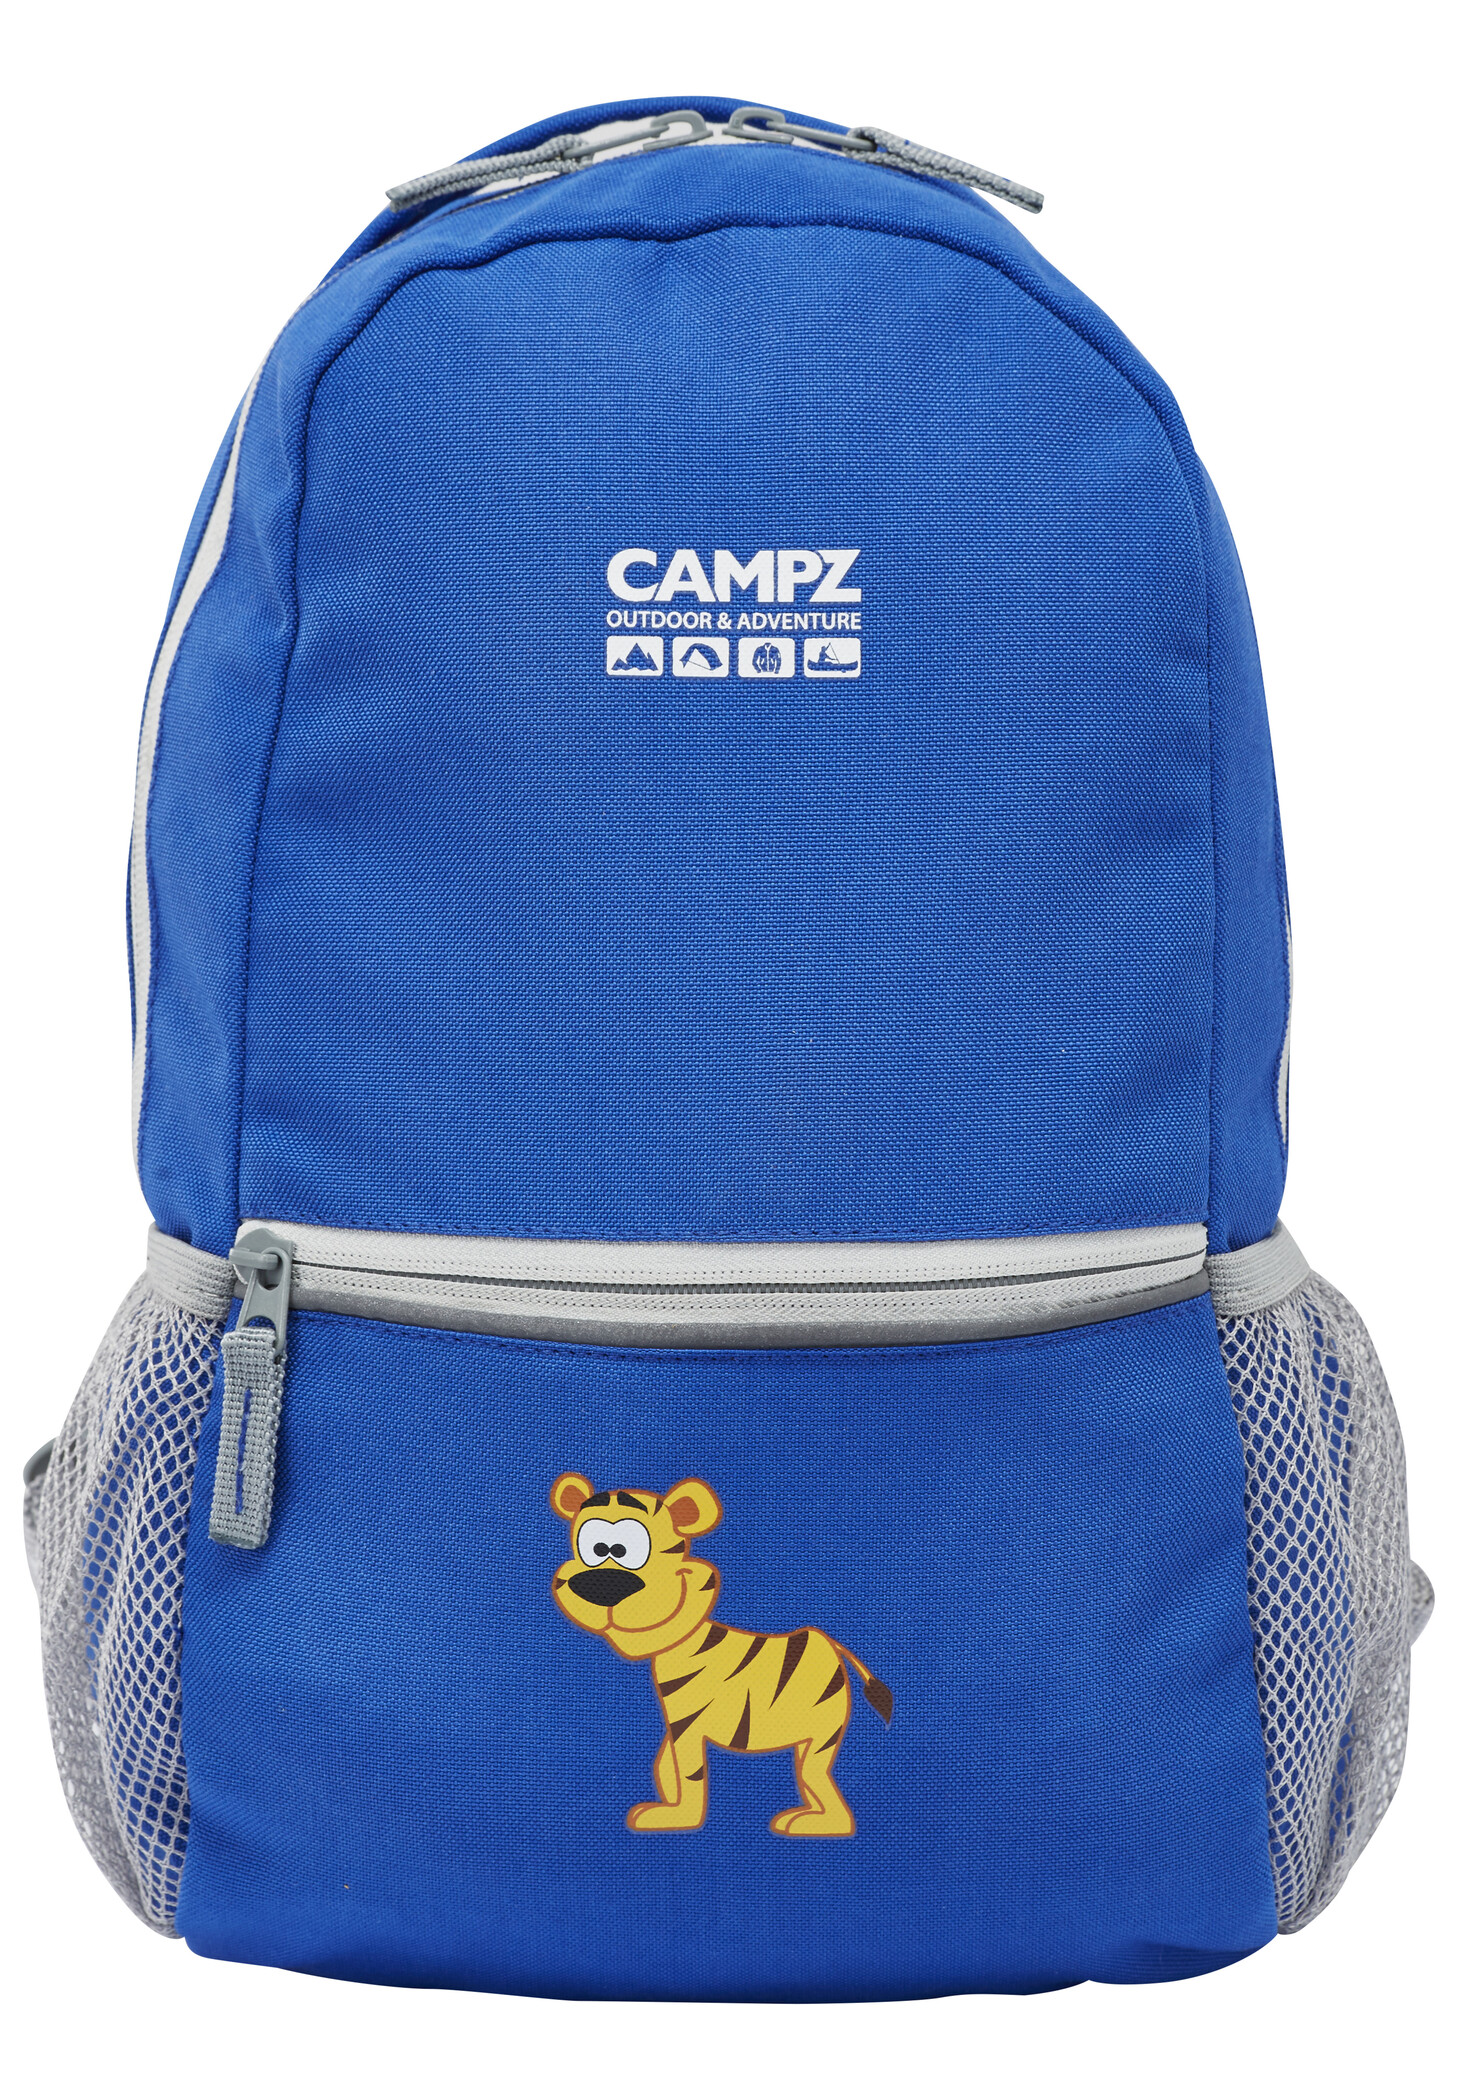 campz.nlz3r0d timing chip strap 1197679.html